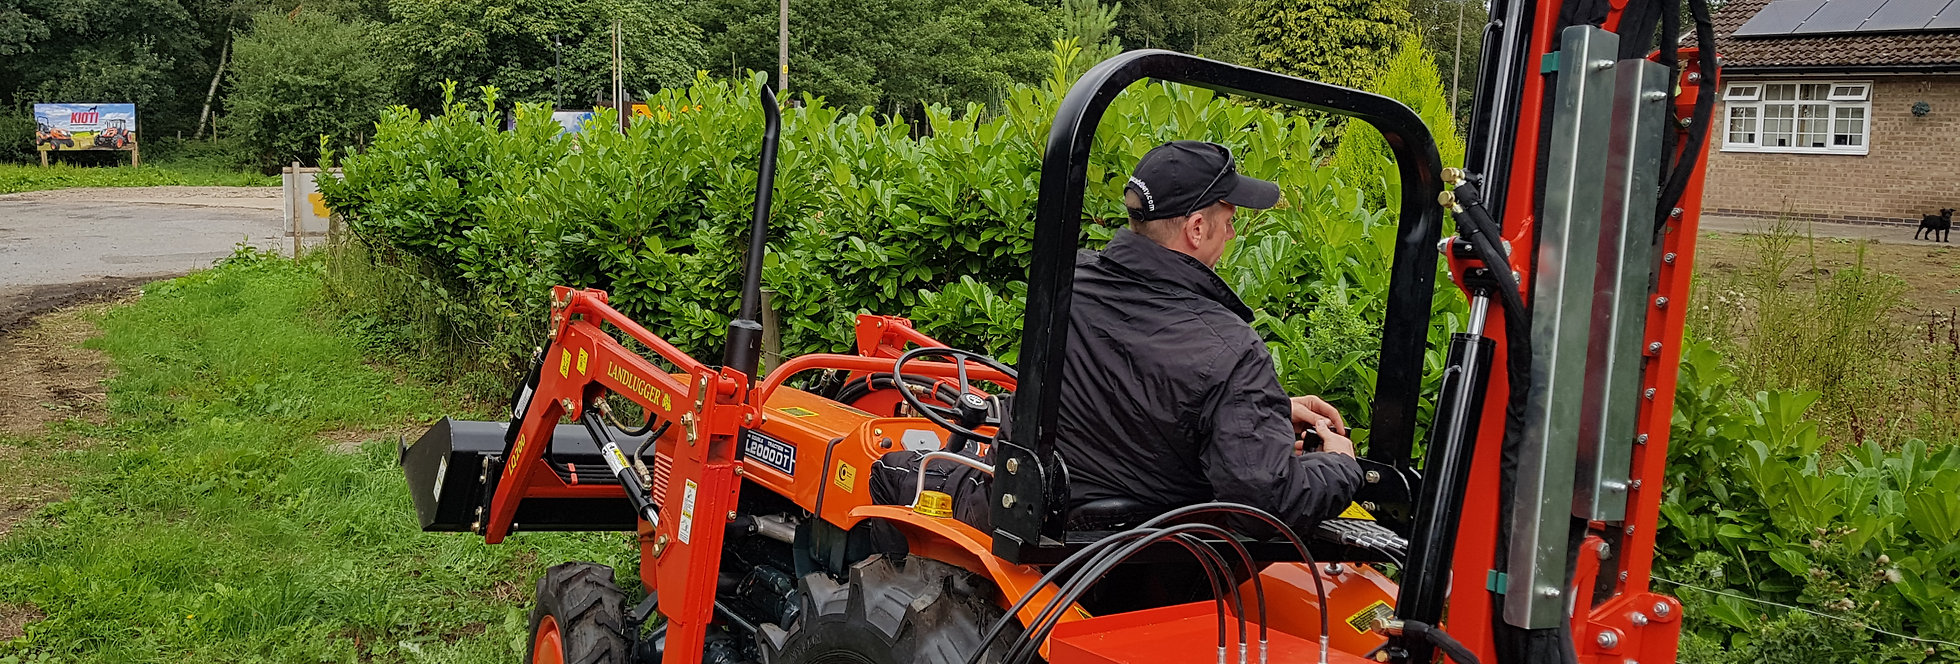 Superb Compact Tractor Hedge Cutter   Tractor Hedge Cutters For Sale